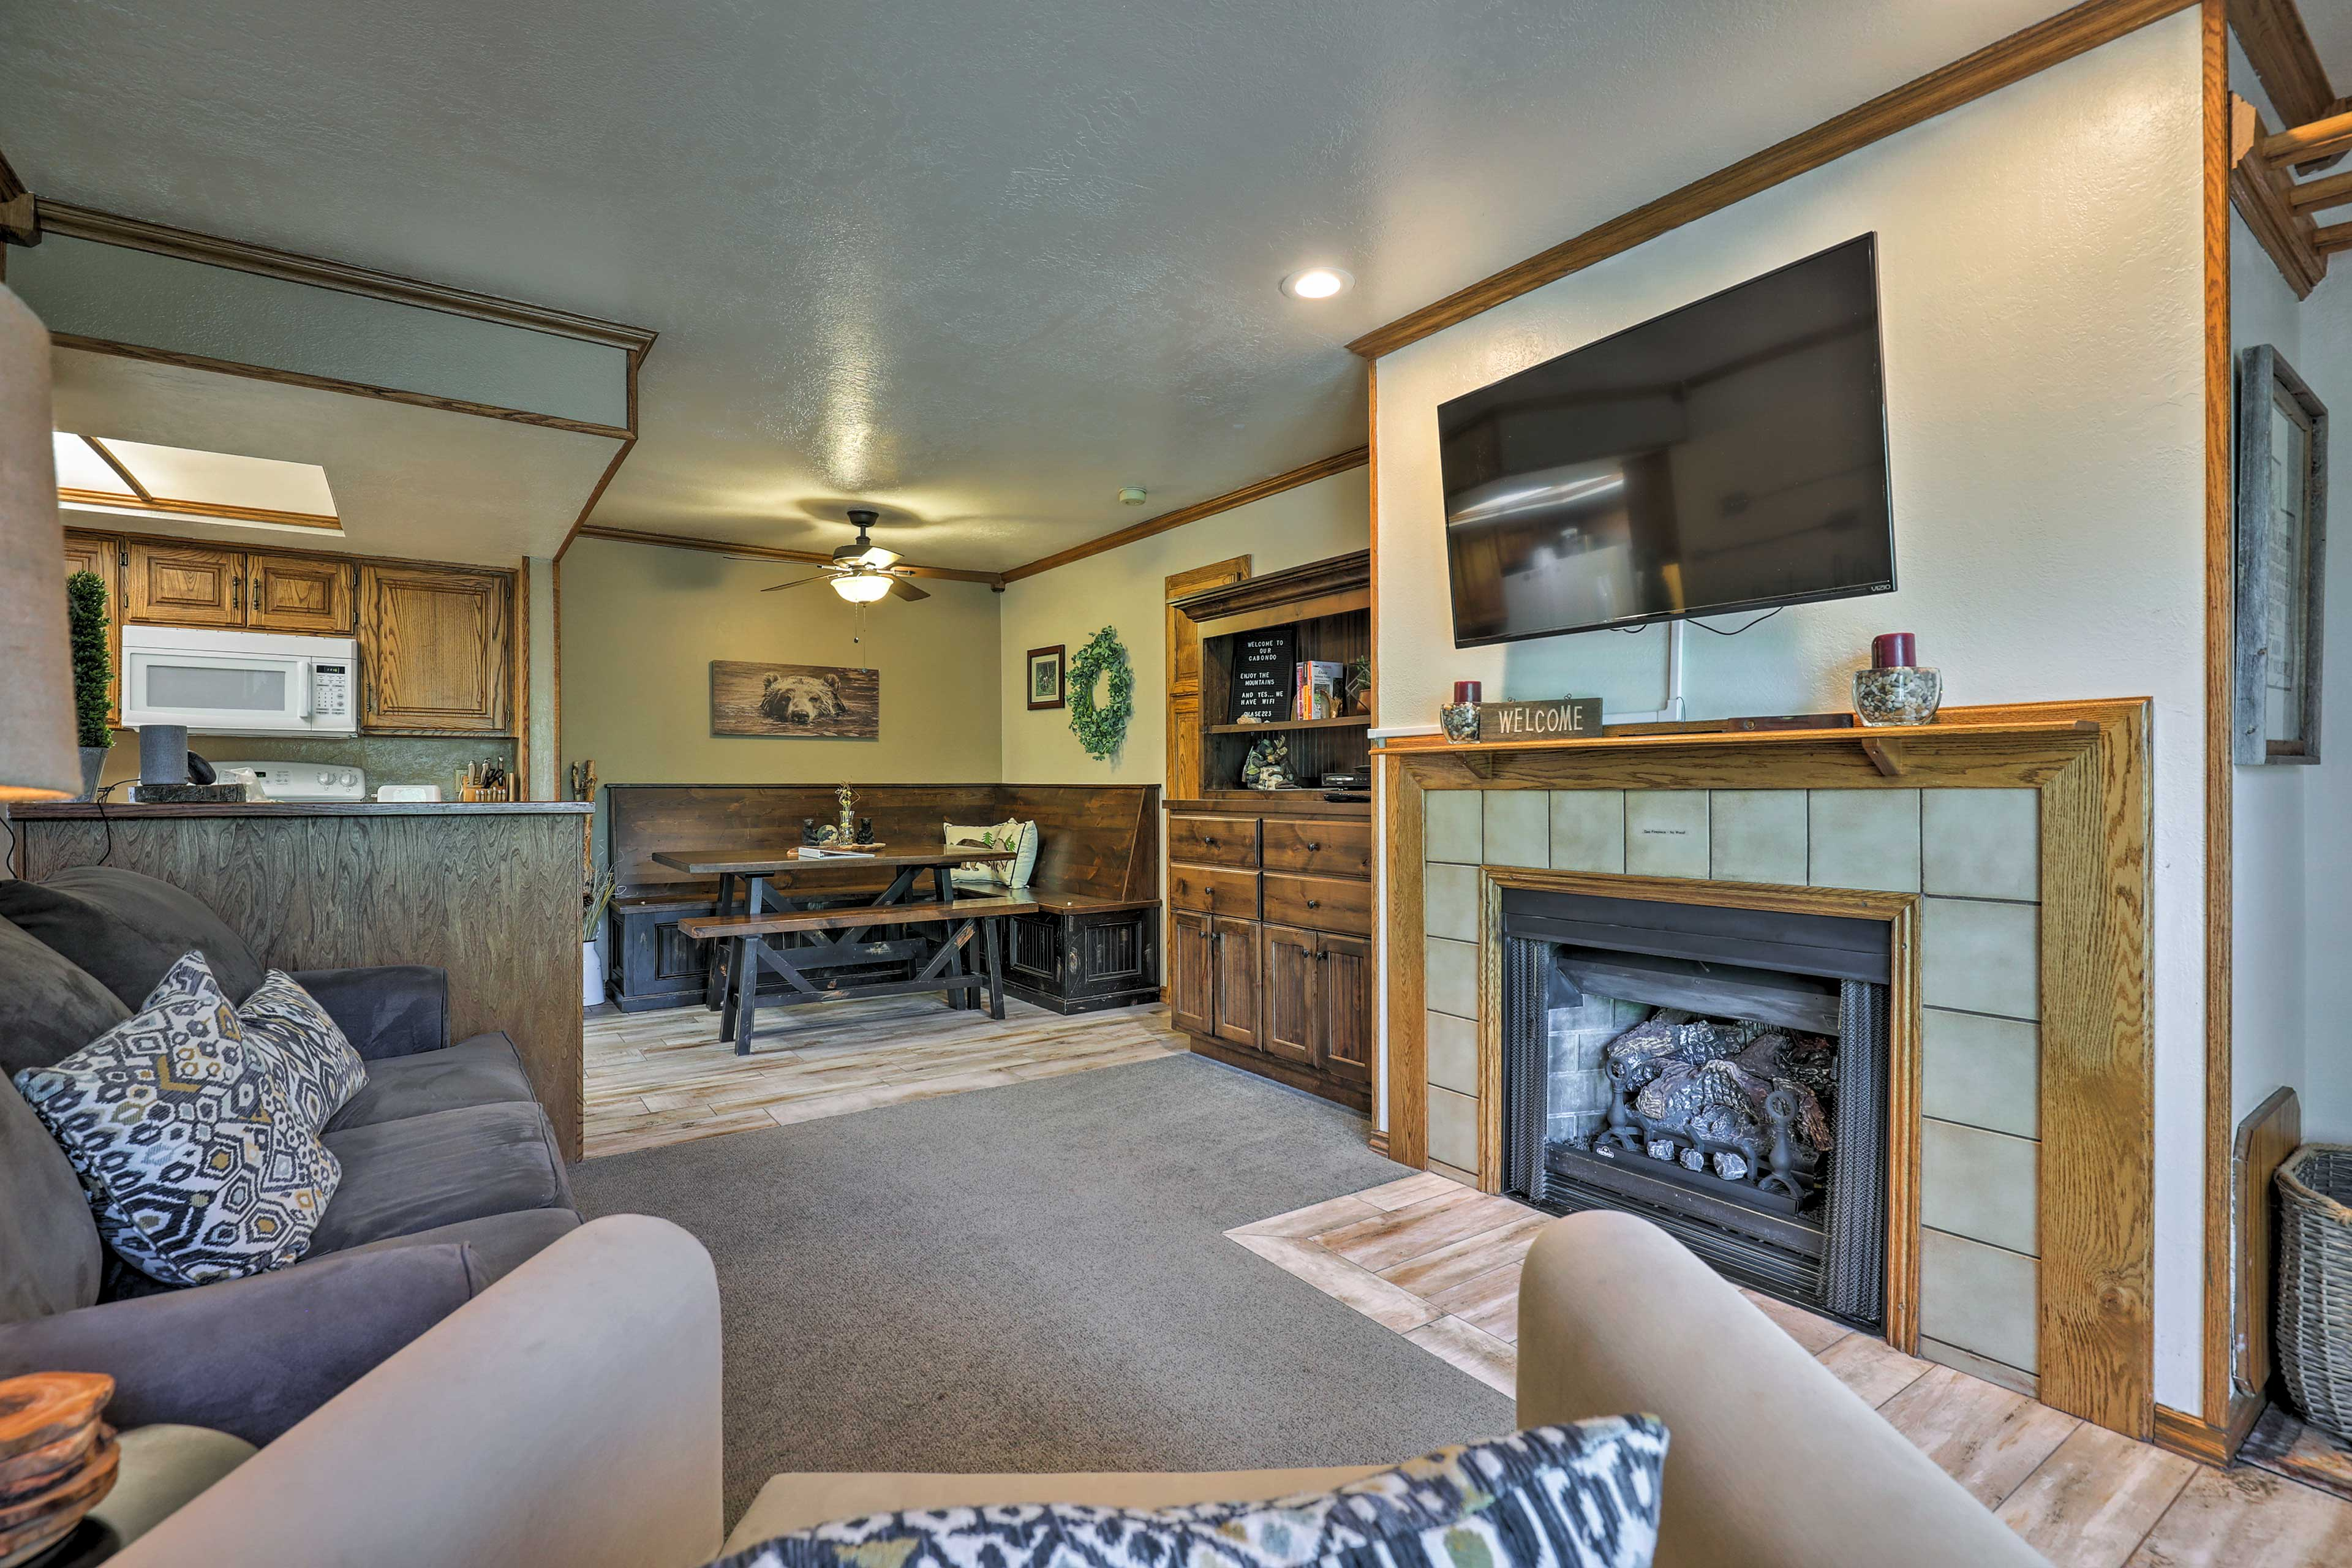 Turn on the gas fireplace and relax on the sofa while you watch TV.